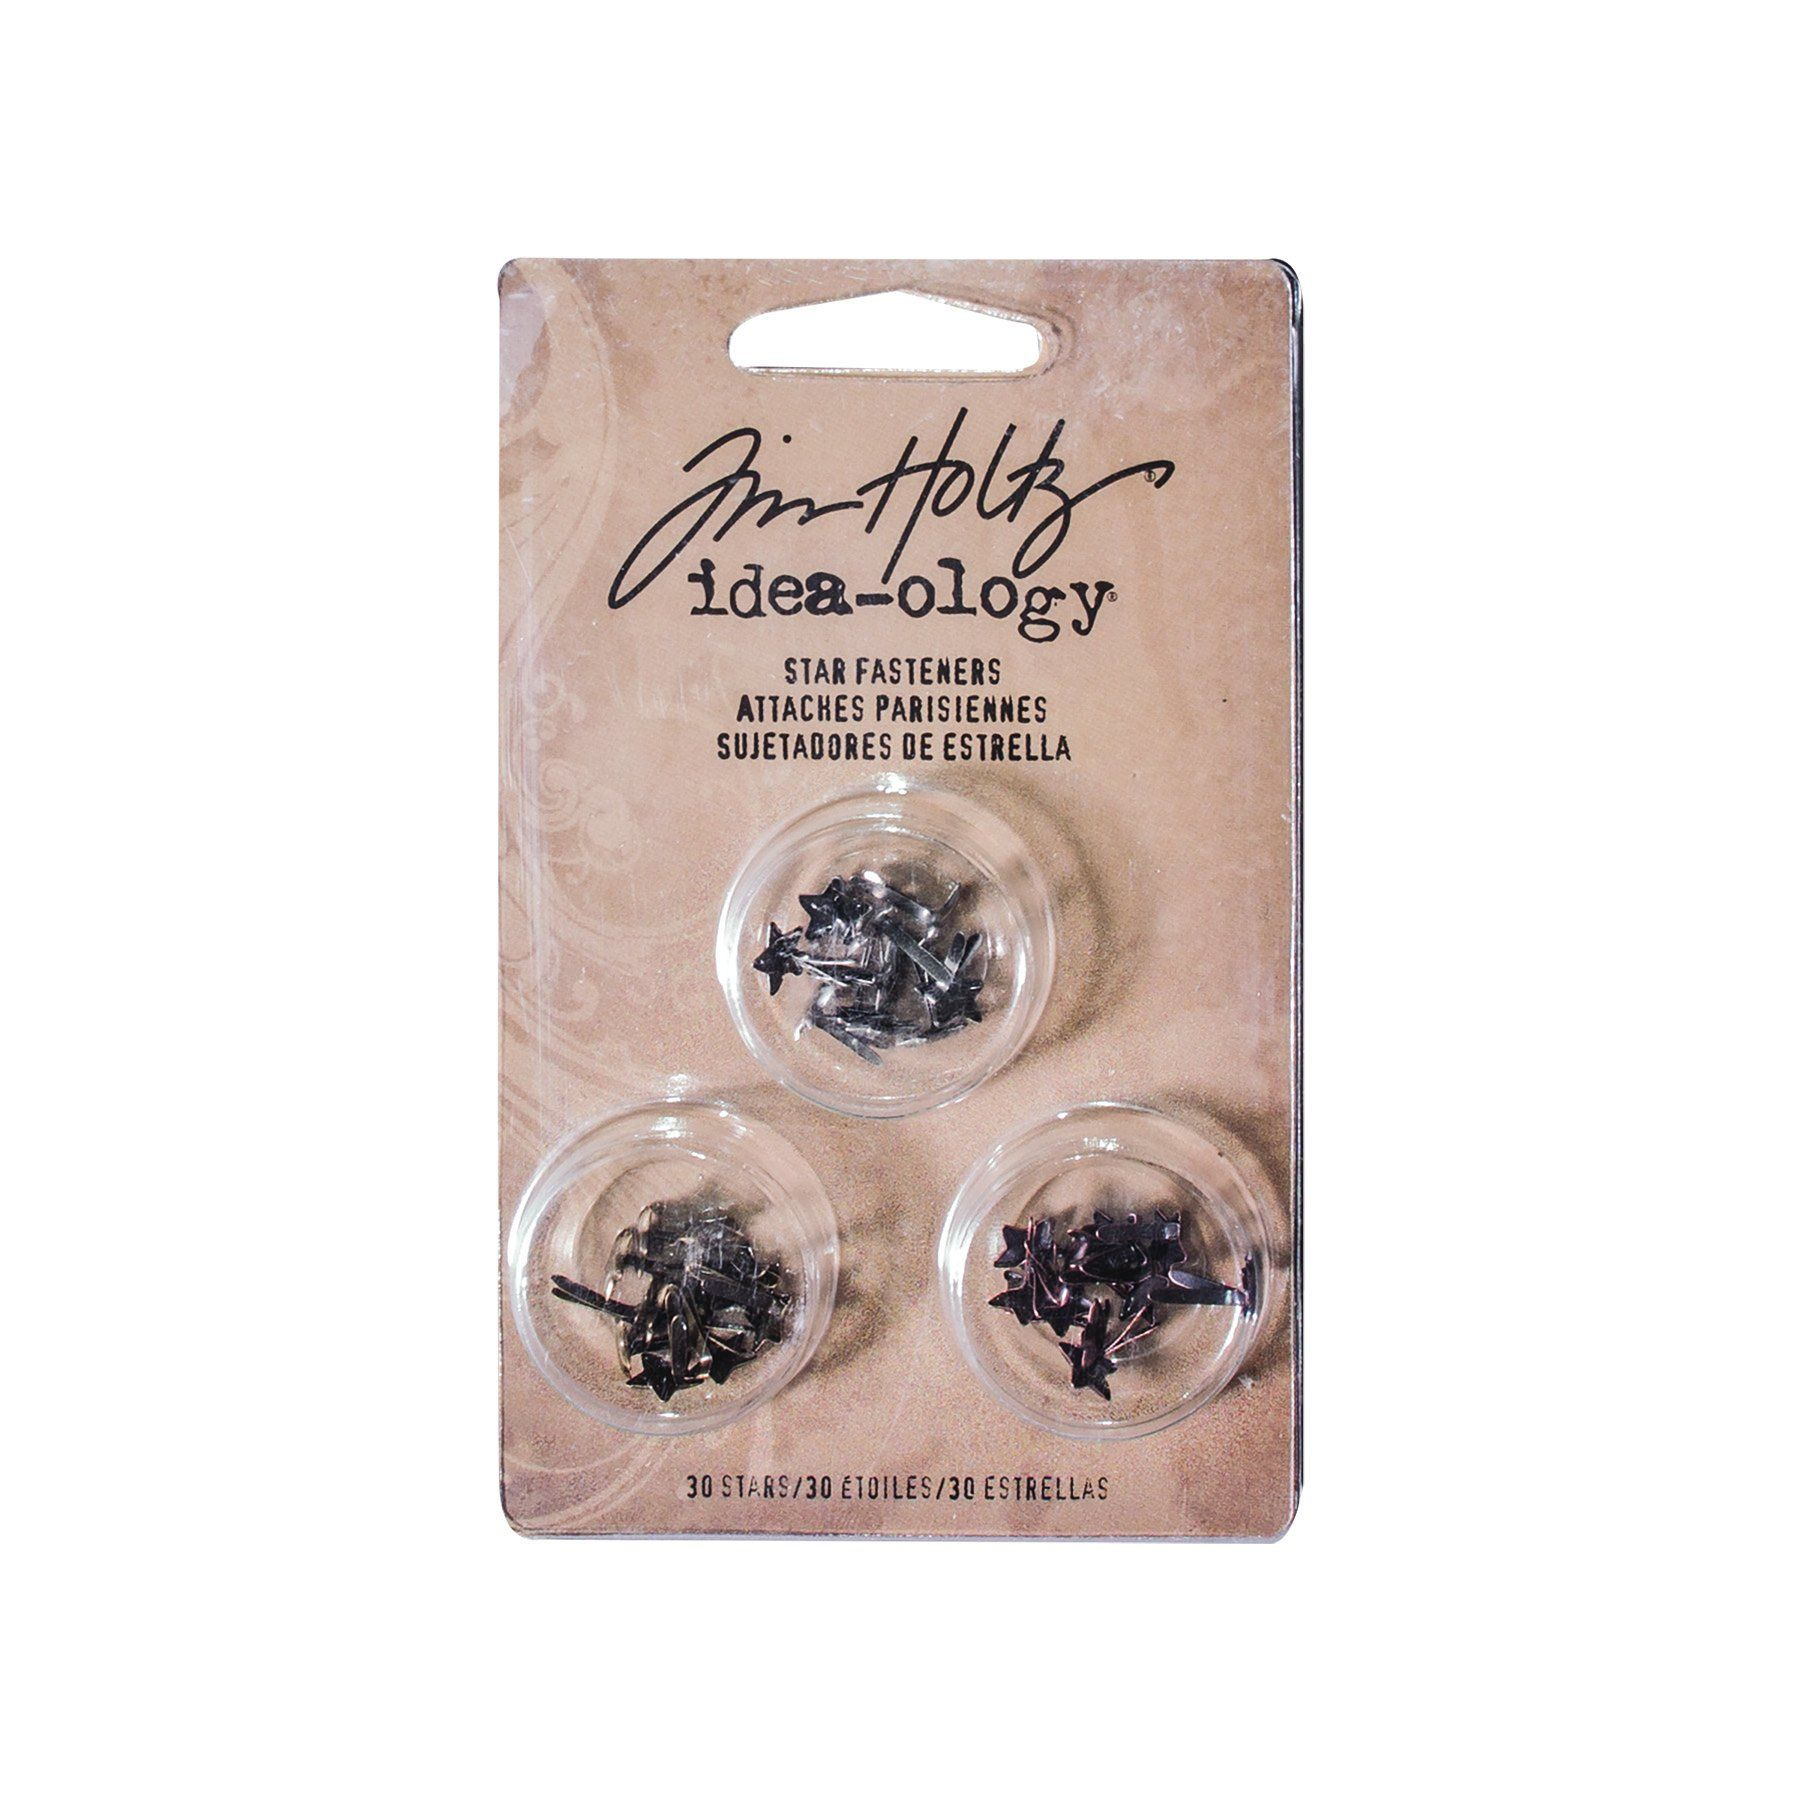 Tim Holtz® Idea-ology Fasteners - Star Fasteners Idea-ology Tim Holtz Other